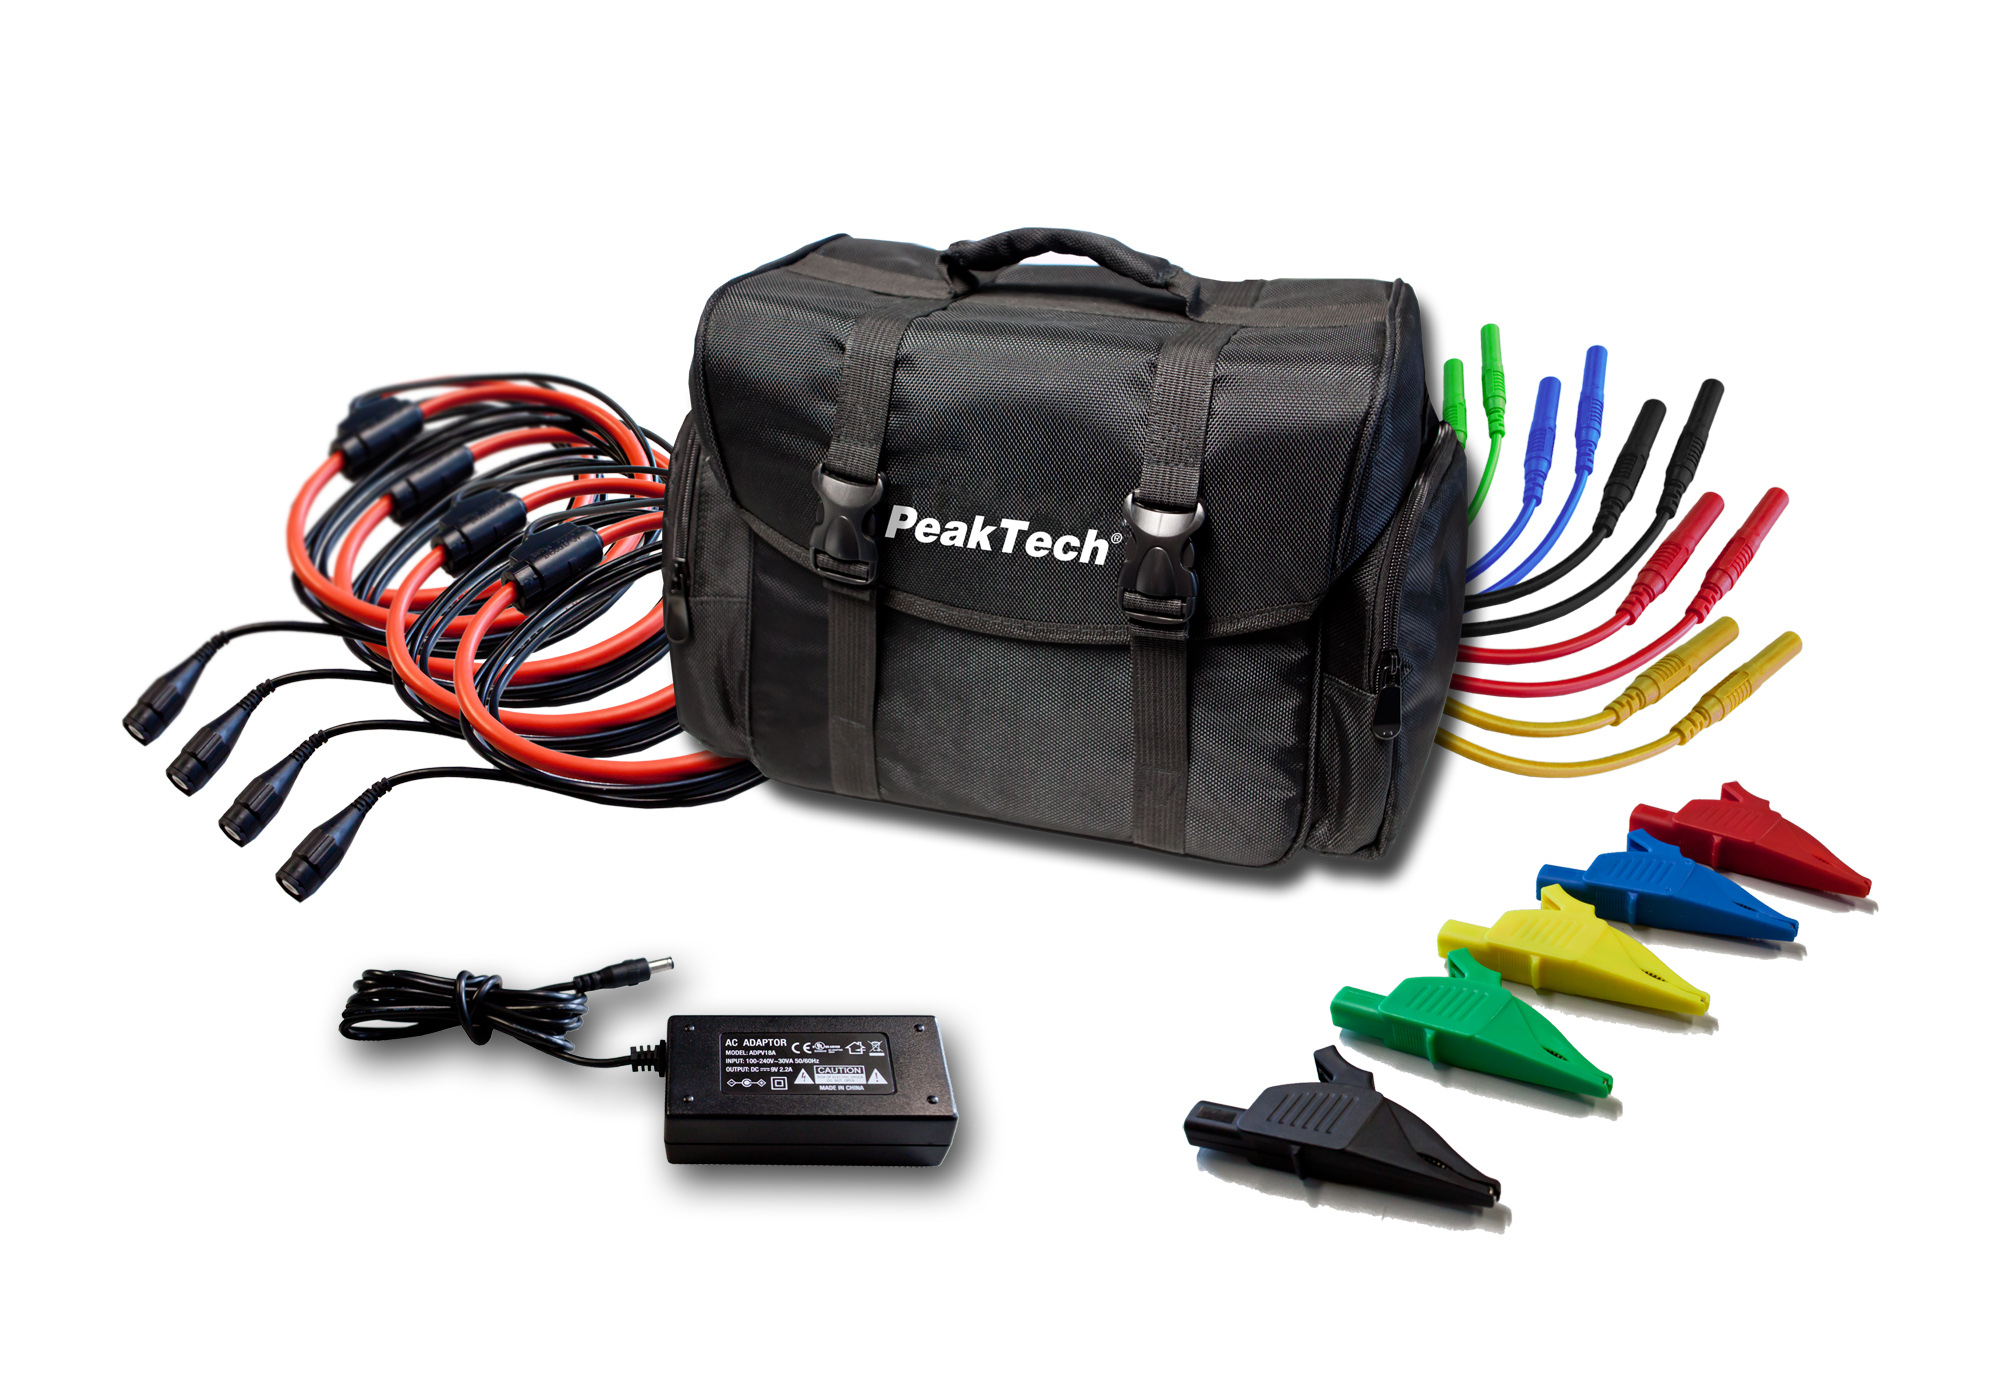 «PeakTech® P 4145» Power analyzer with RS-232 C interface